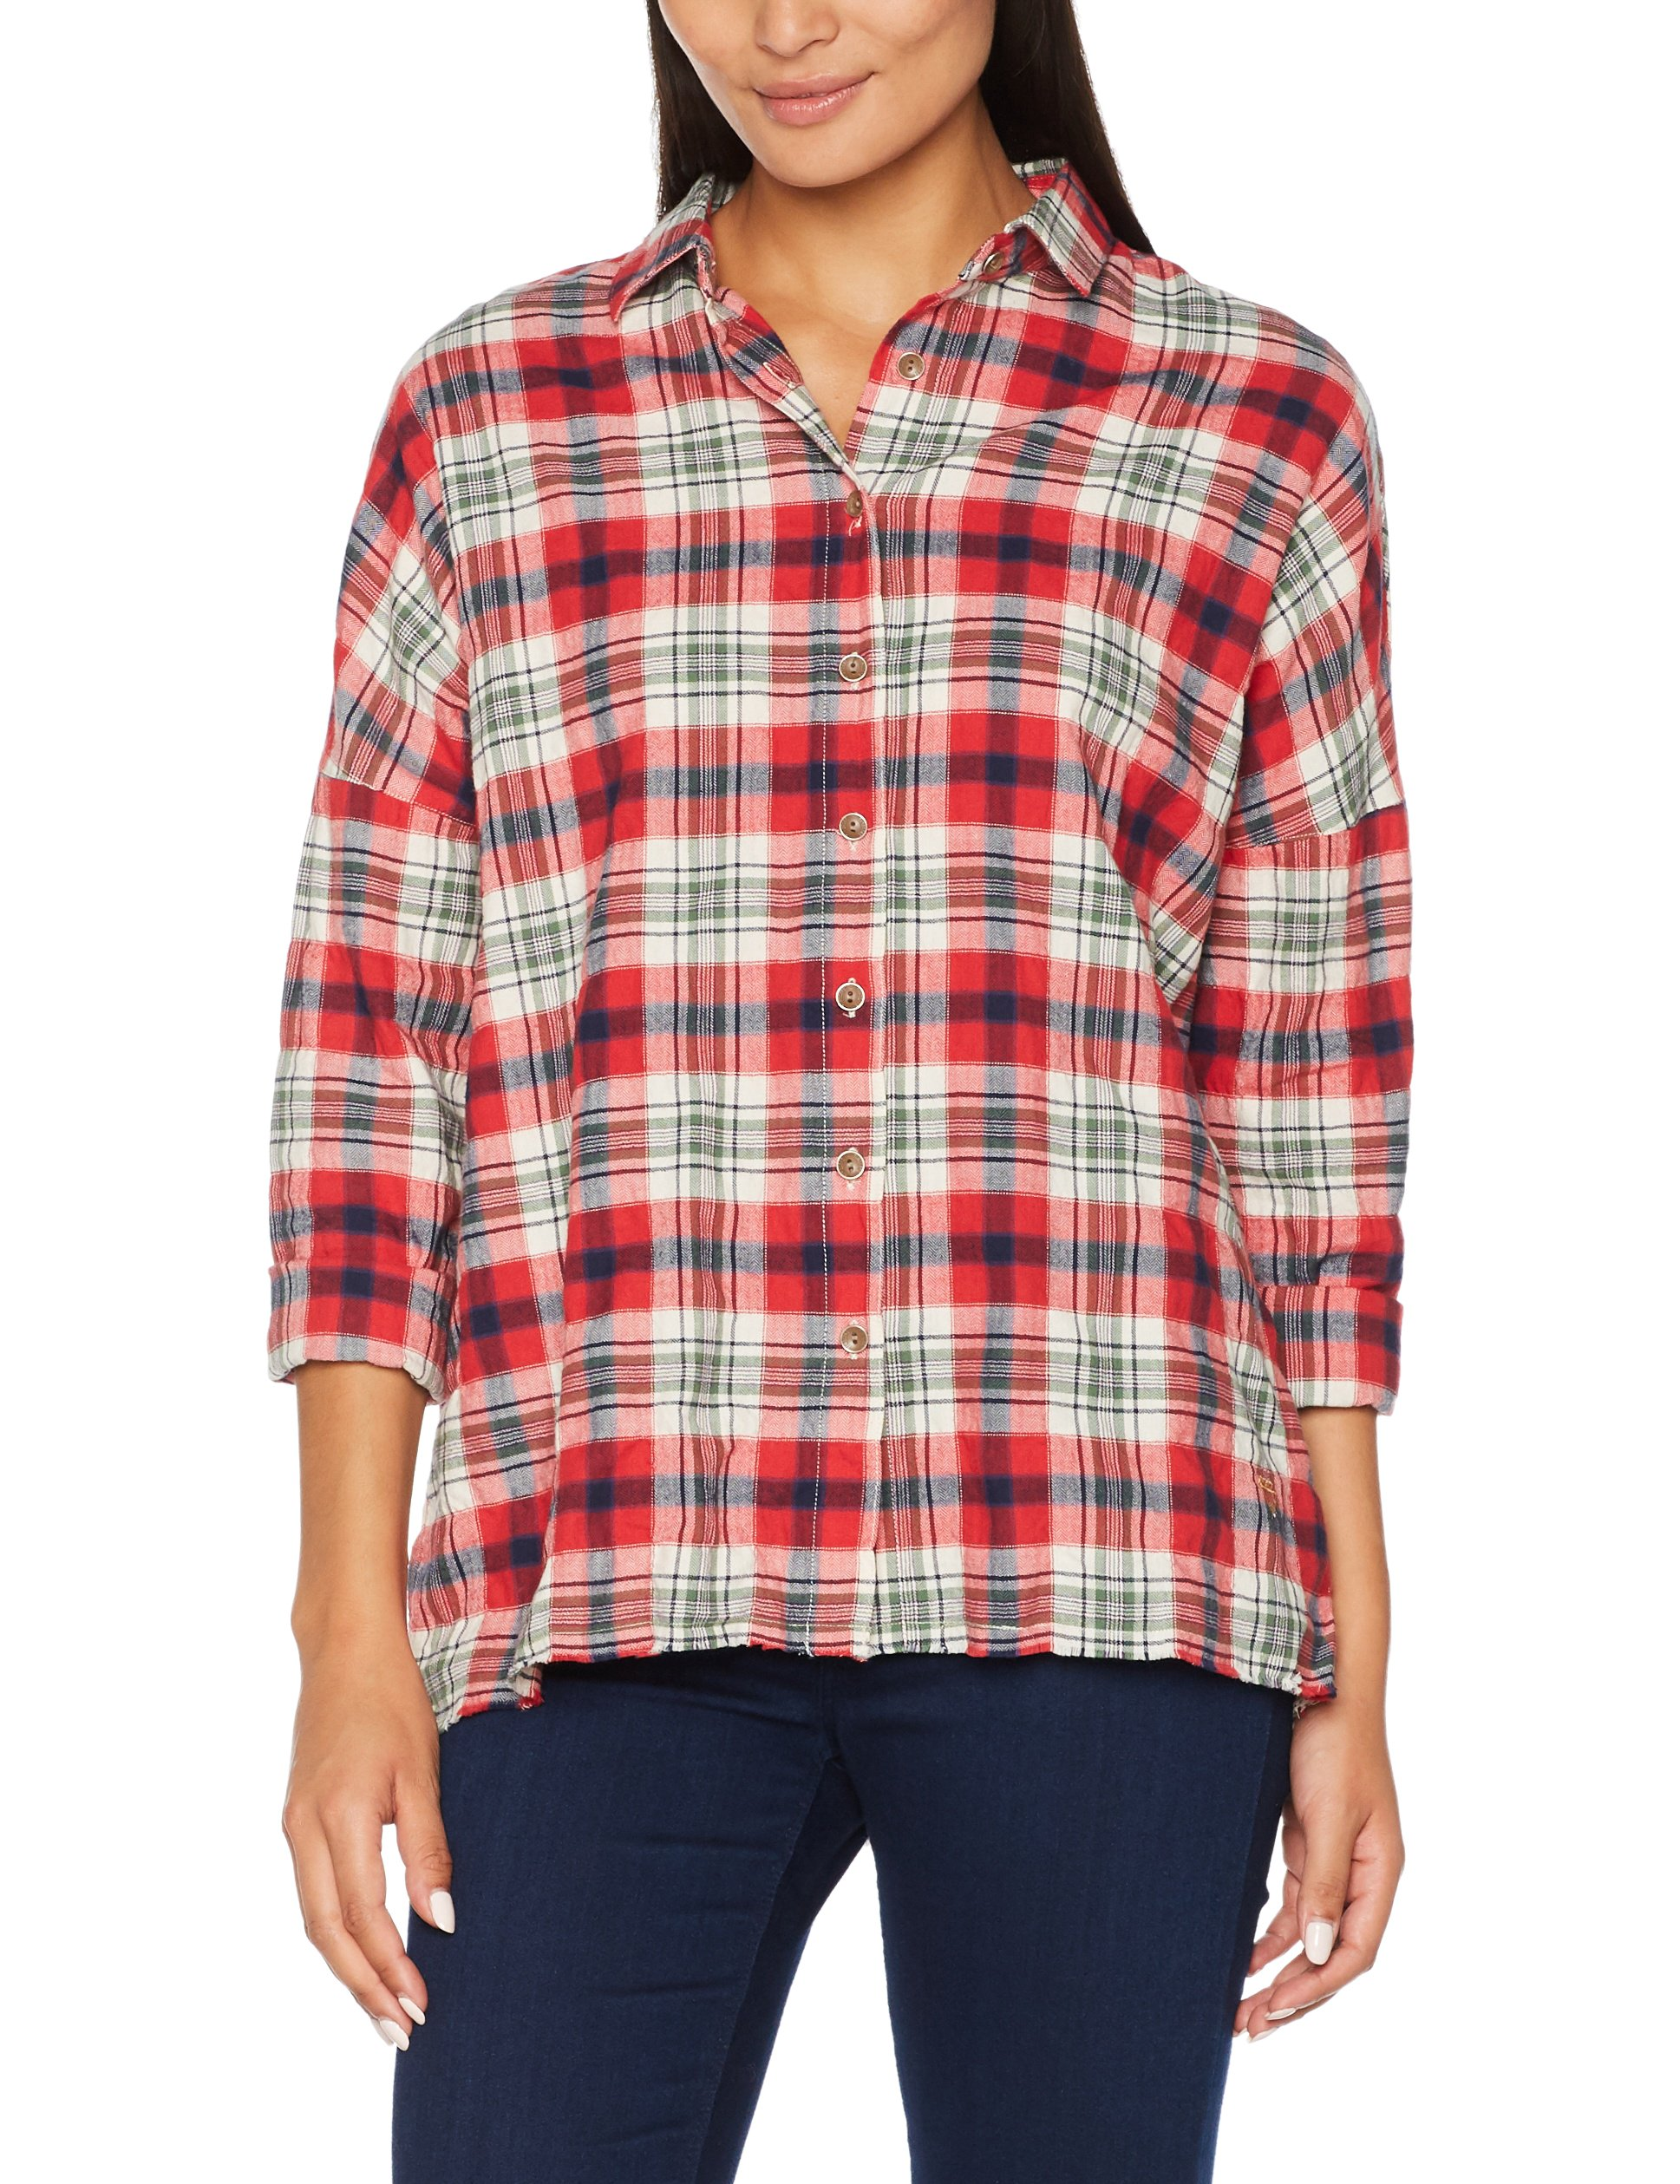 Checked 521540 Timezone Check Logger Femme BlouseRotred 92WDIEH